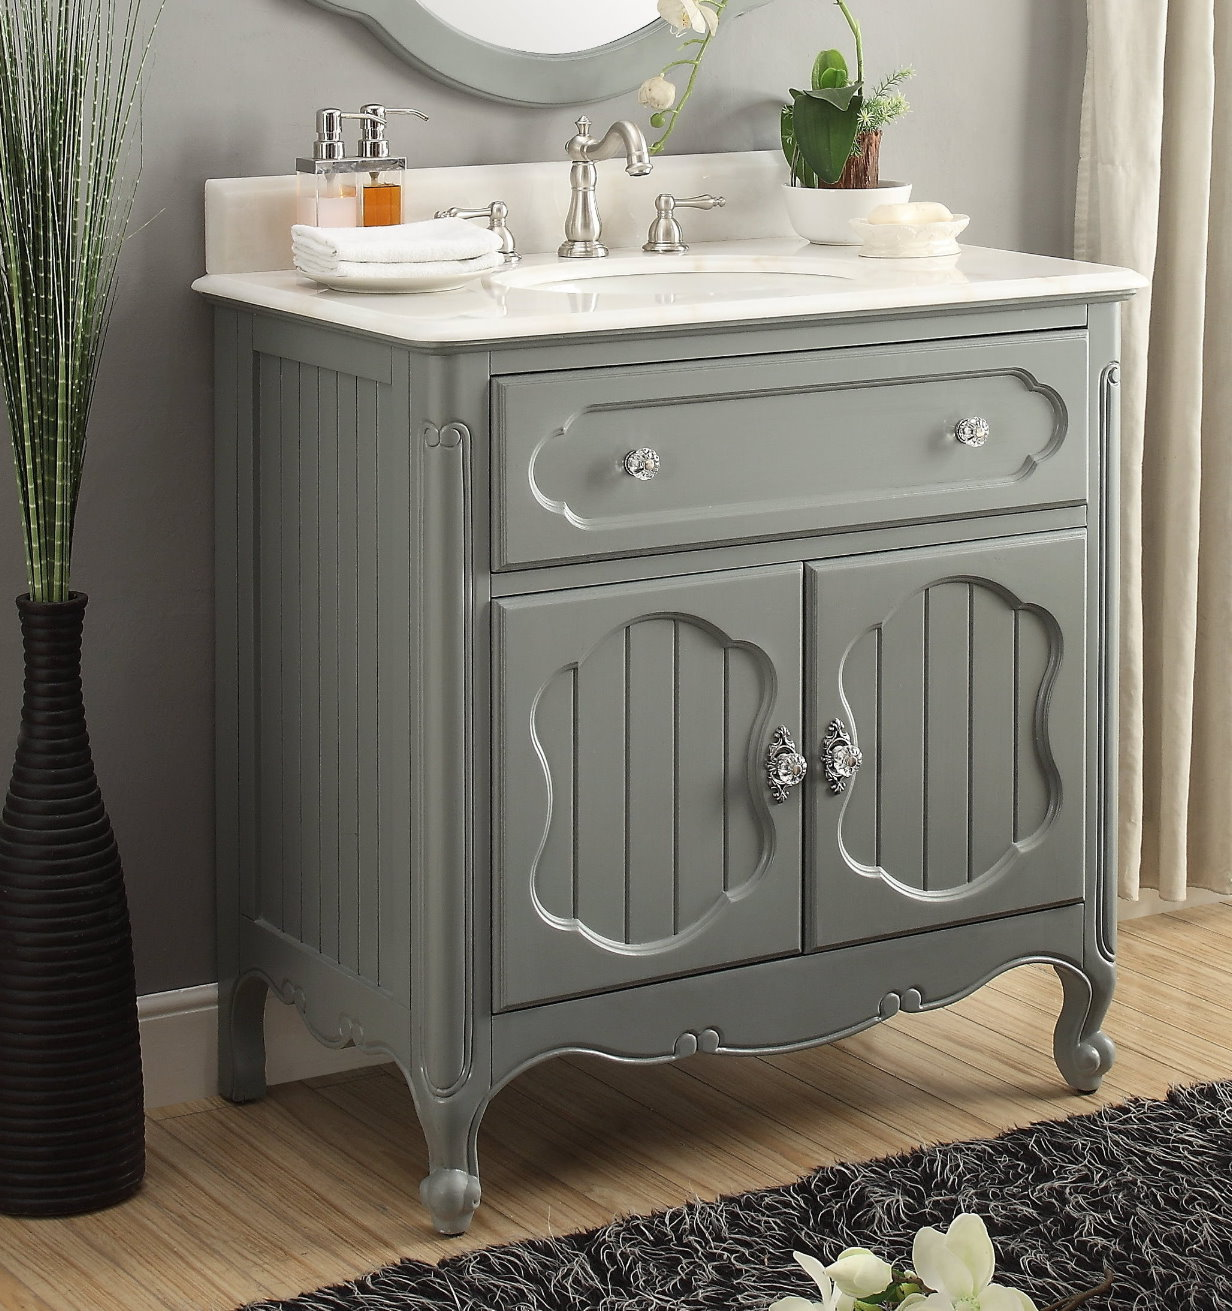 34 Inch Bathroom Vanity Coastal Cottage Beach Style Vintage Gray Color Wx21 Dx35 H Cgd1533ck